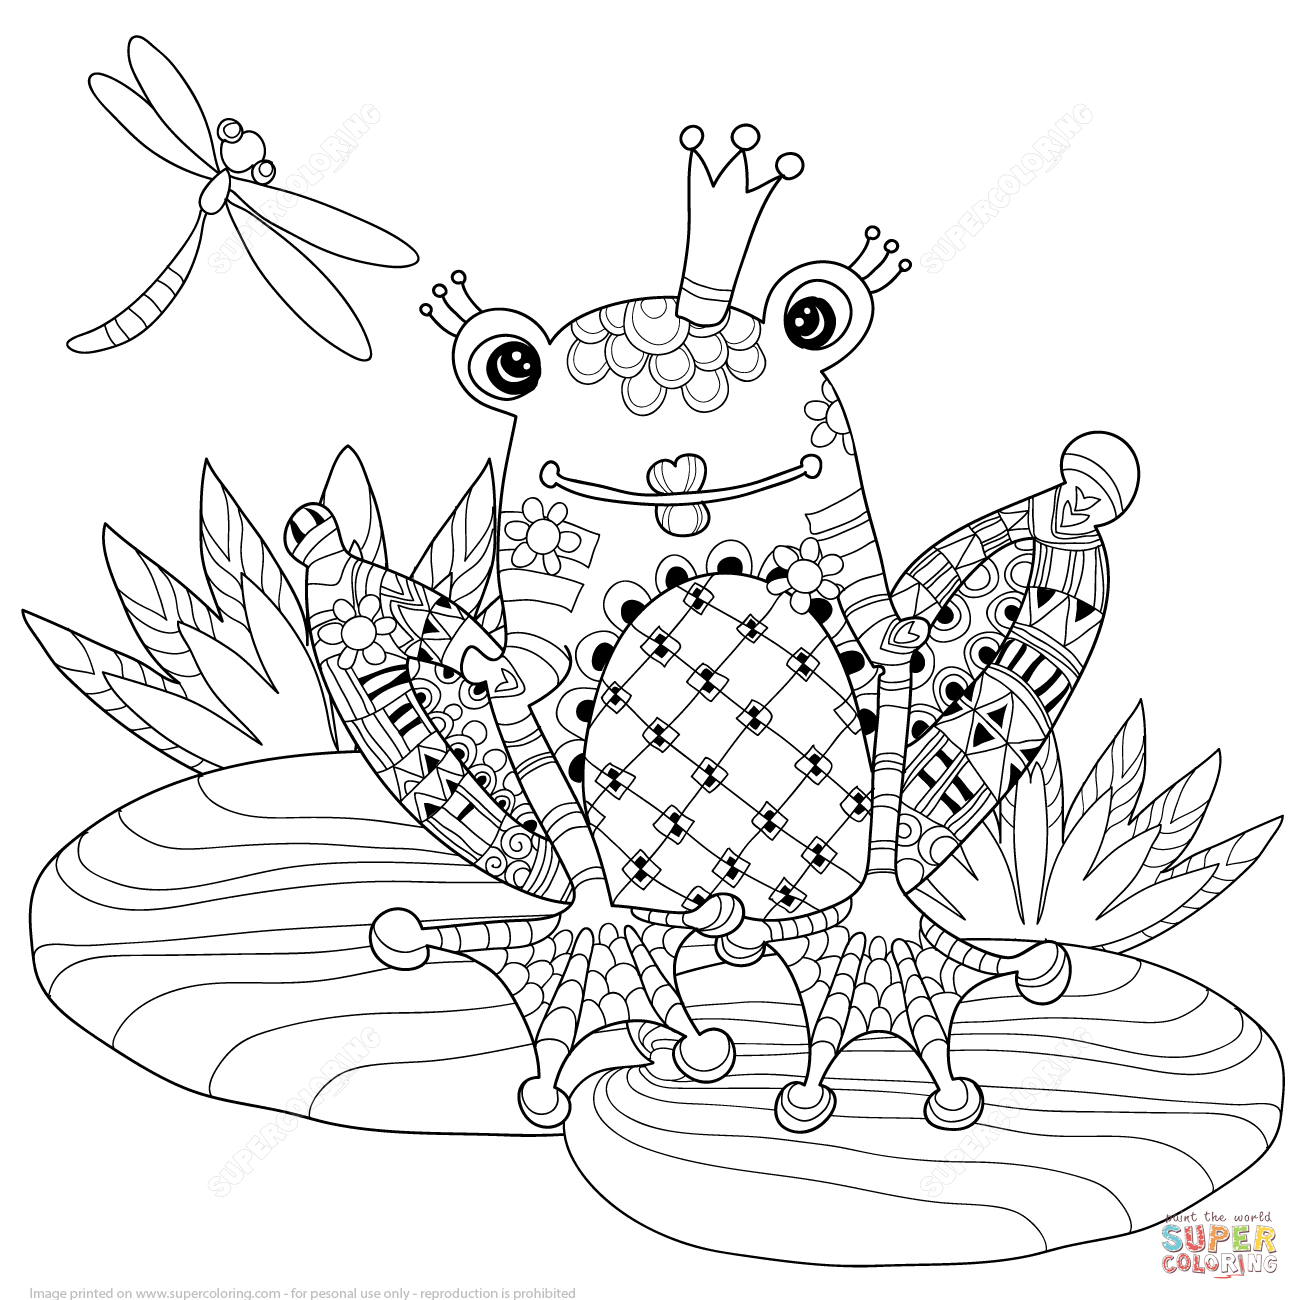 Zentangle De Principe Rana